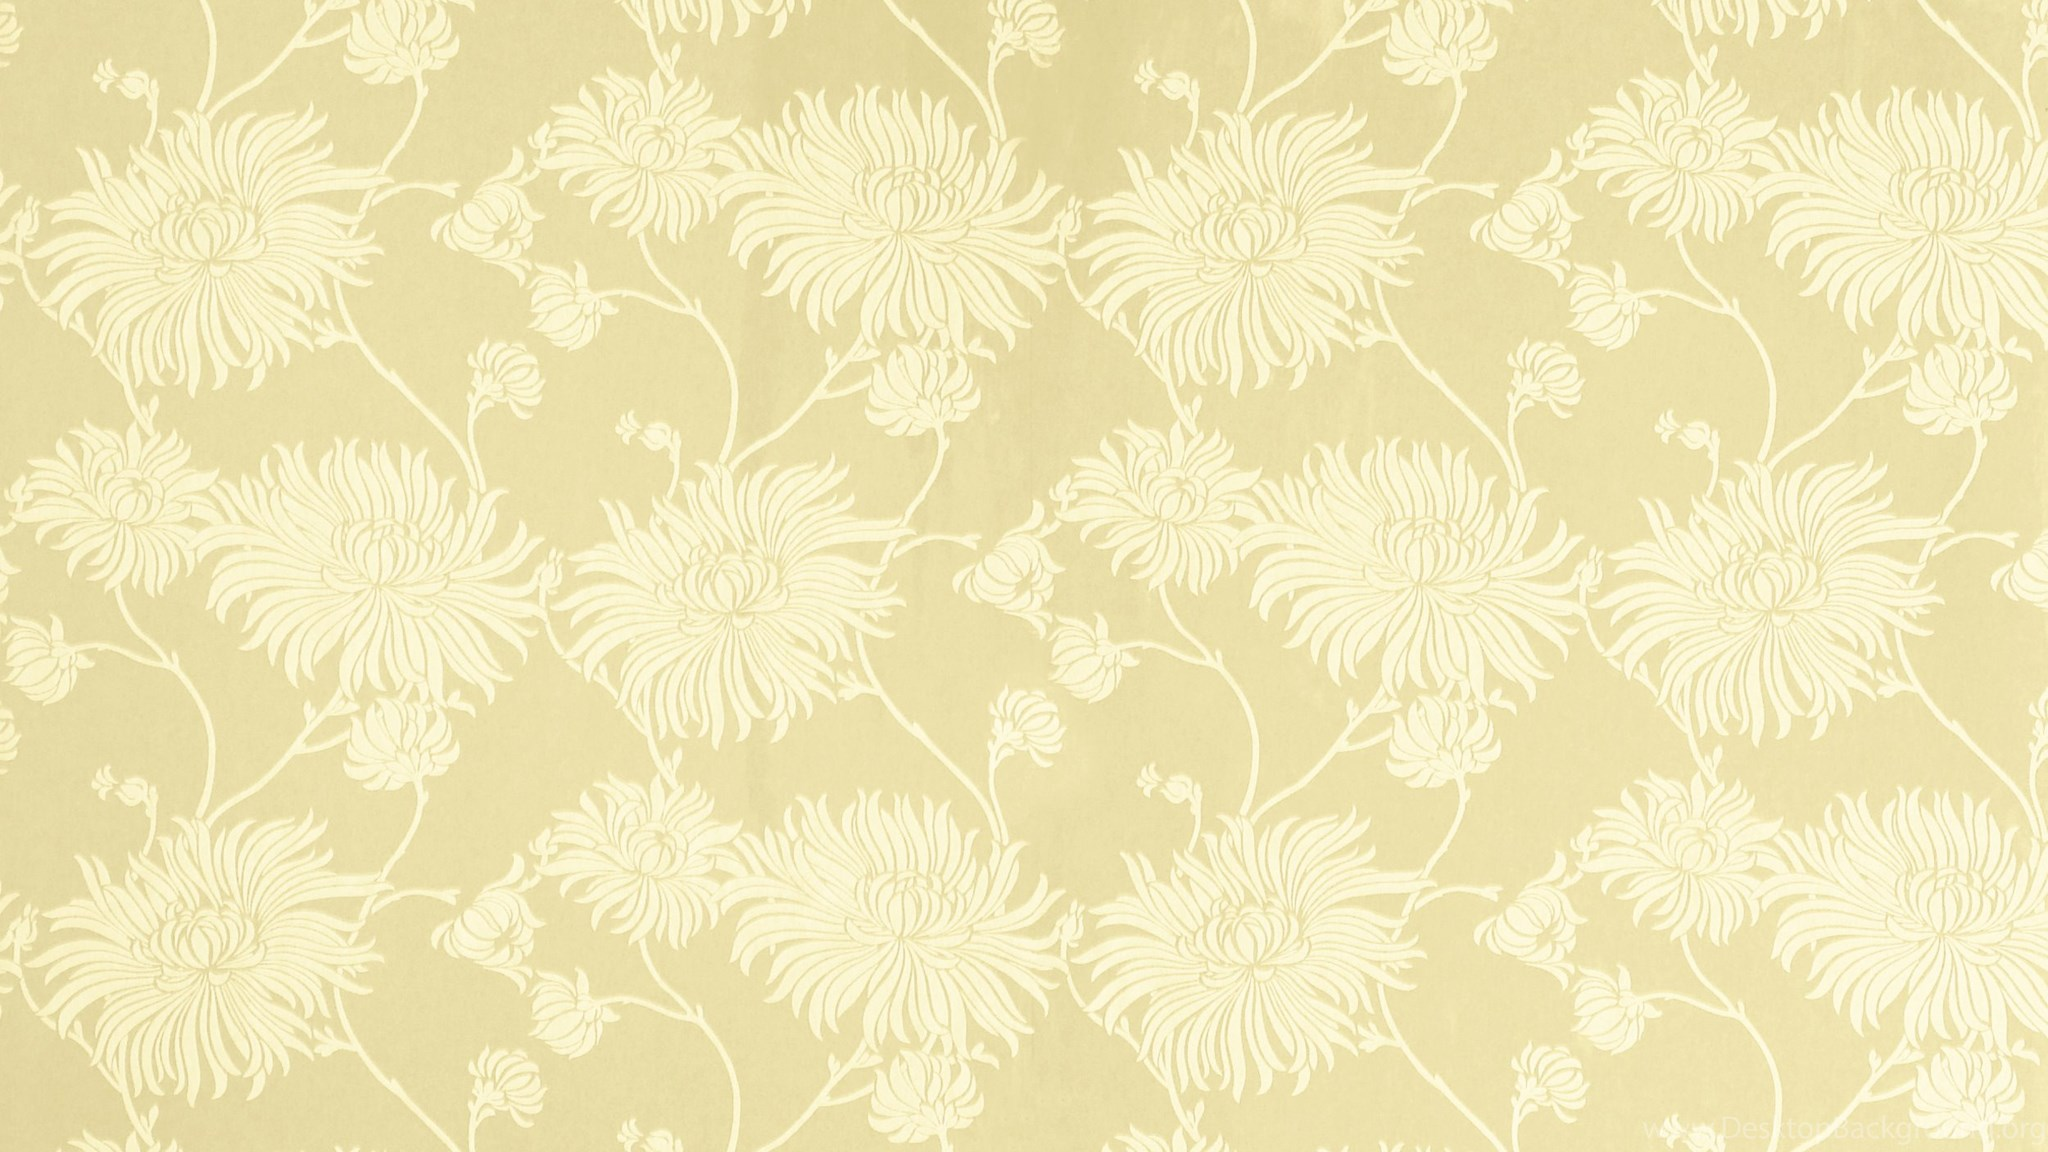 Kimono Gold Floral Wallpapers At Laura Ashley Desktop Background